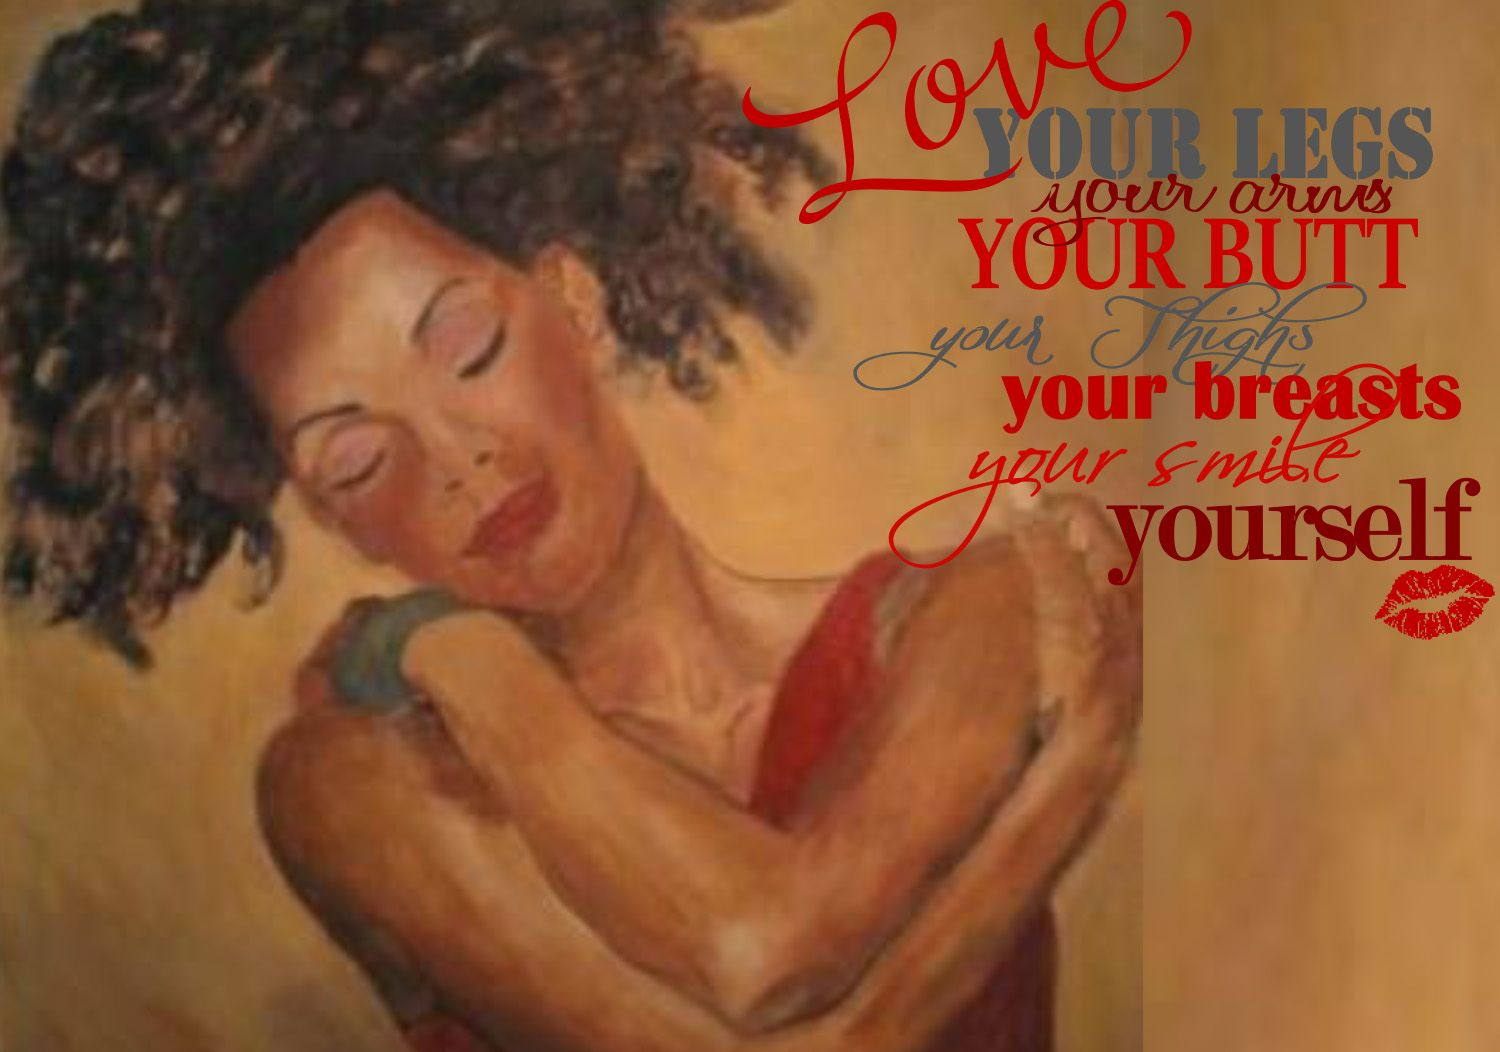 First Love Yourself www.MichelleCuttino.com Michelle Cuttino Big Body's Blog #LoveAndHappiness